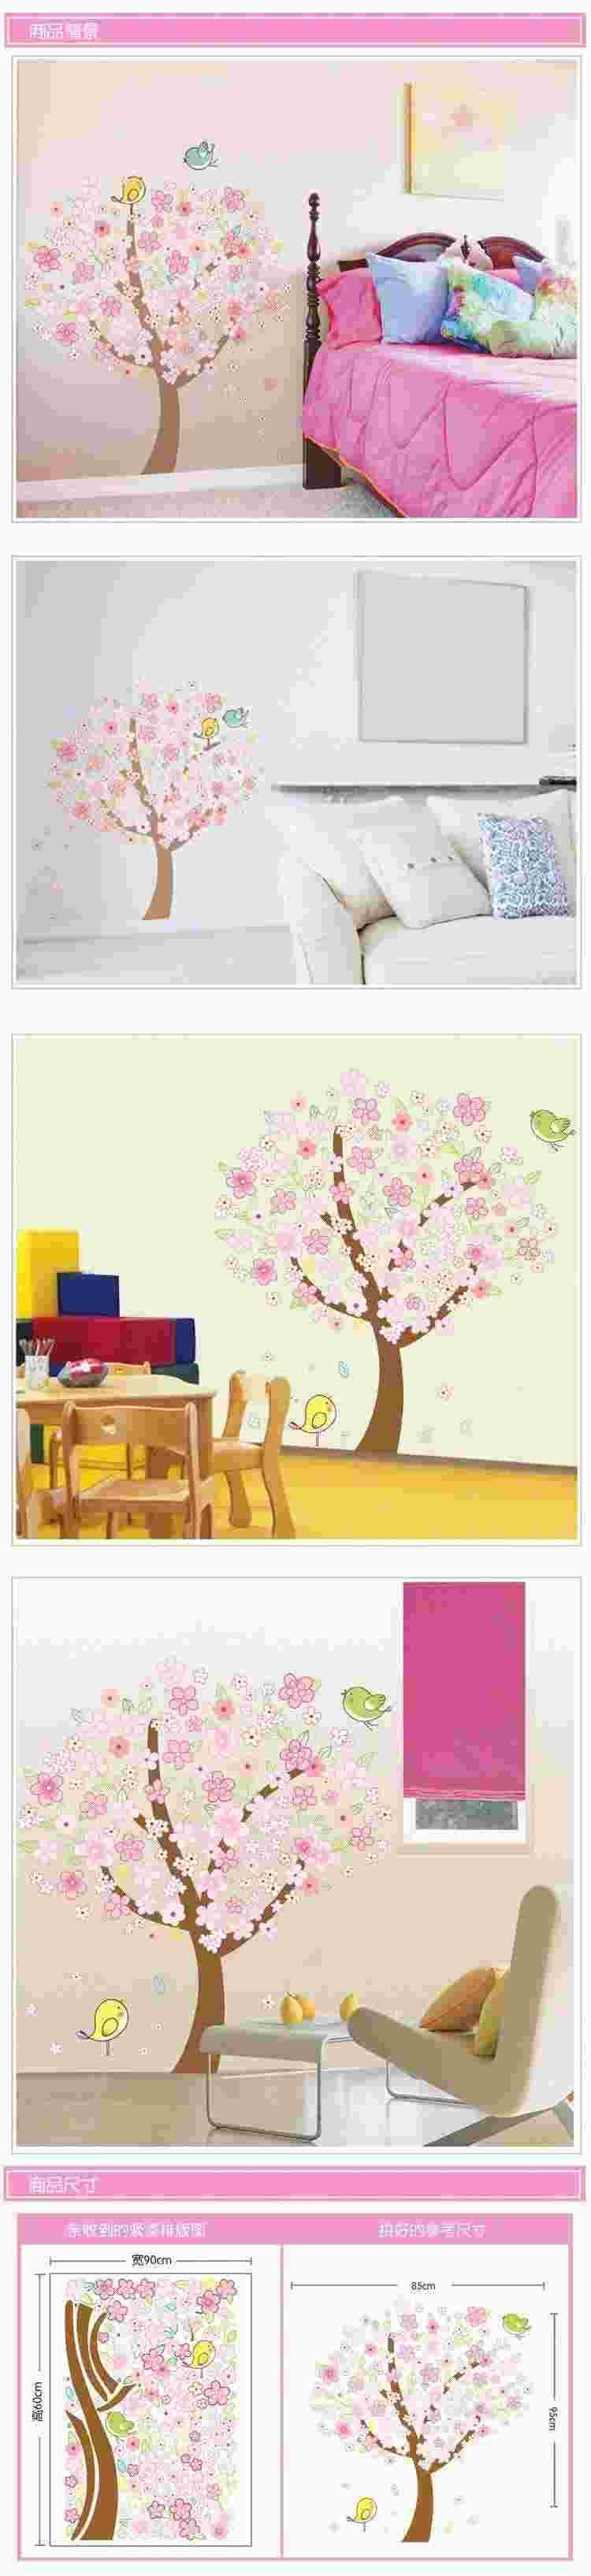 wall stickers home decor xx1131 happy peach tree backdrop use stickers on the wall decoration properly can bring big changes to your house flower and grass stickers on wall for the spring blue and yellow stickers